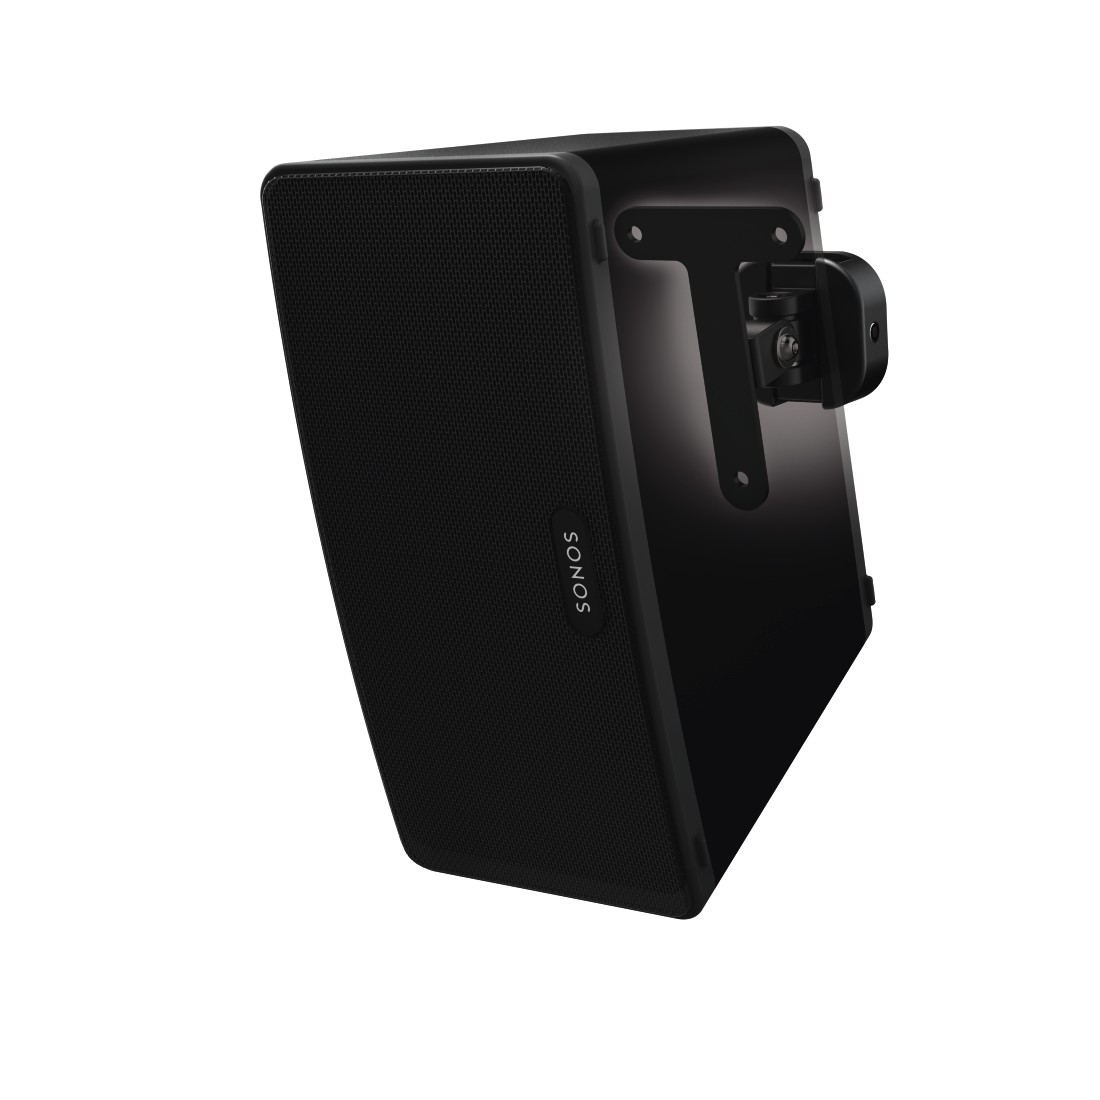 awx3 High-Res Appliance 3 - Hama, Wall Mount for Sonos PLAY:3, full motion, black